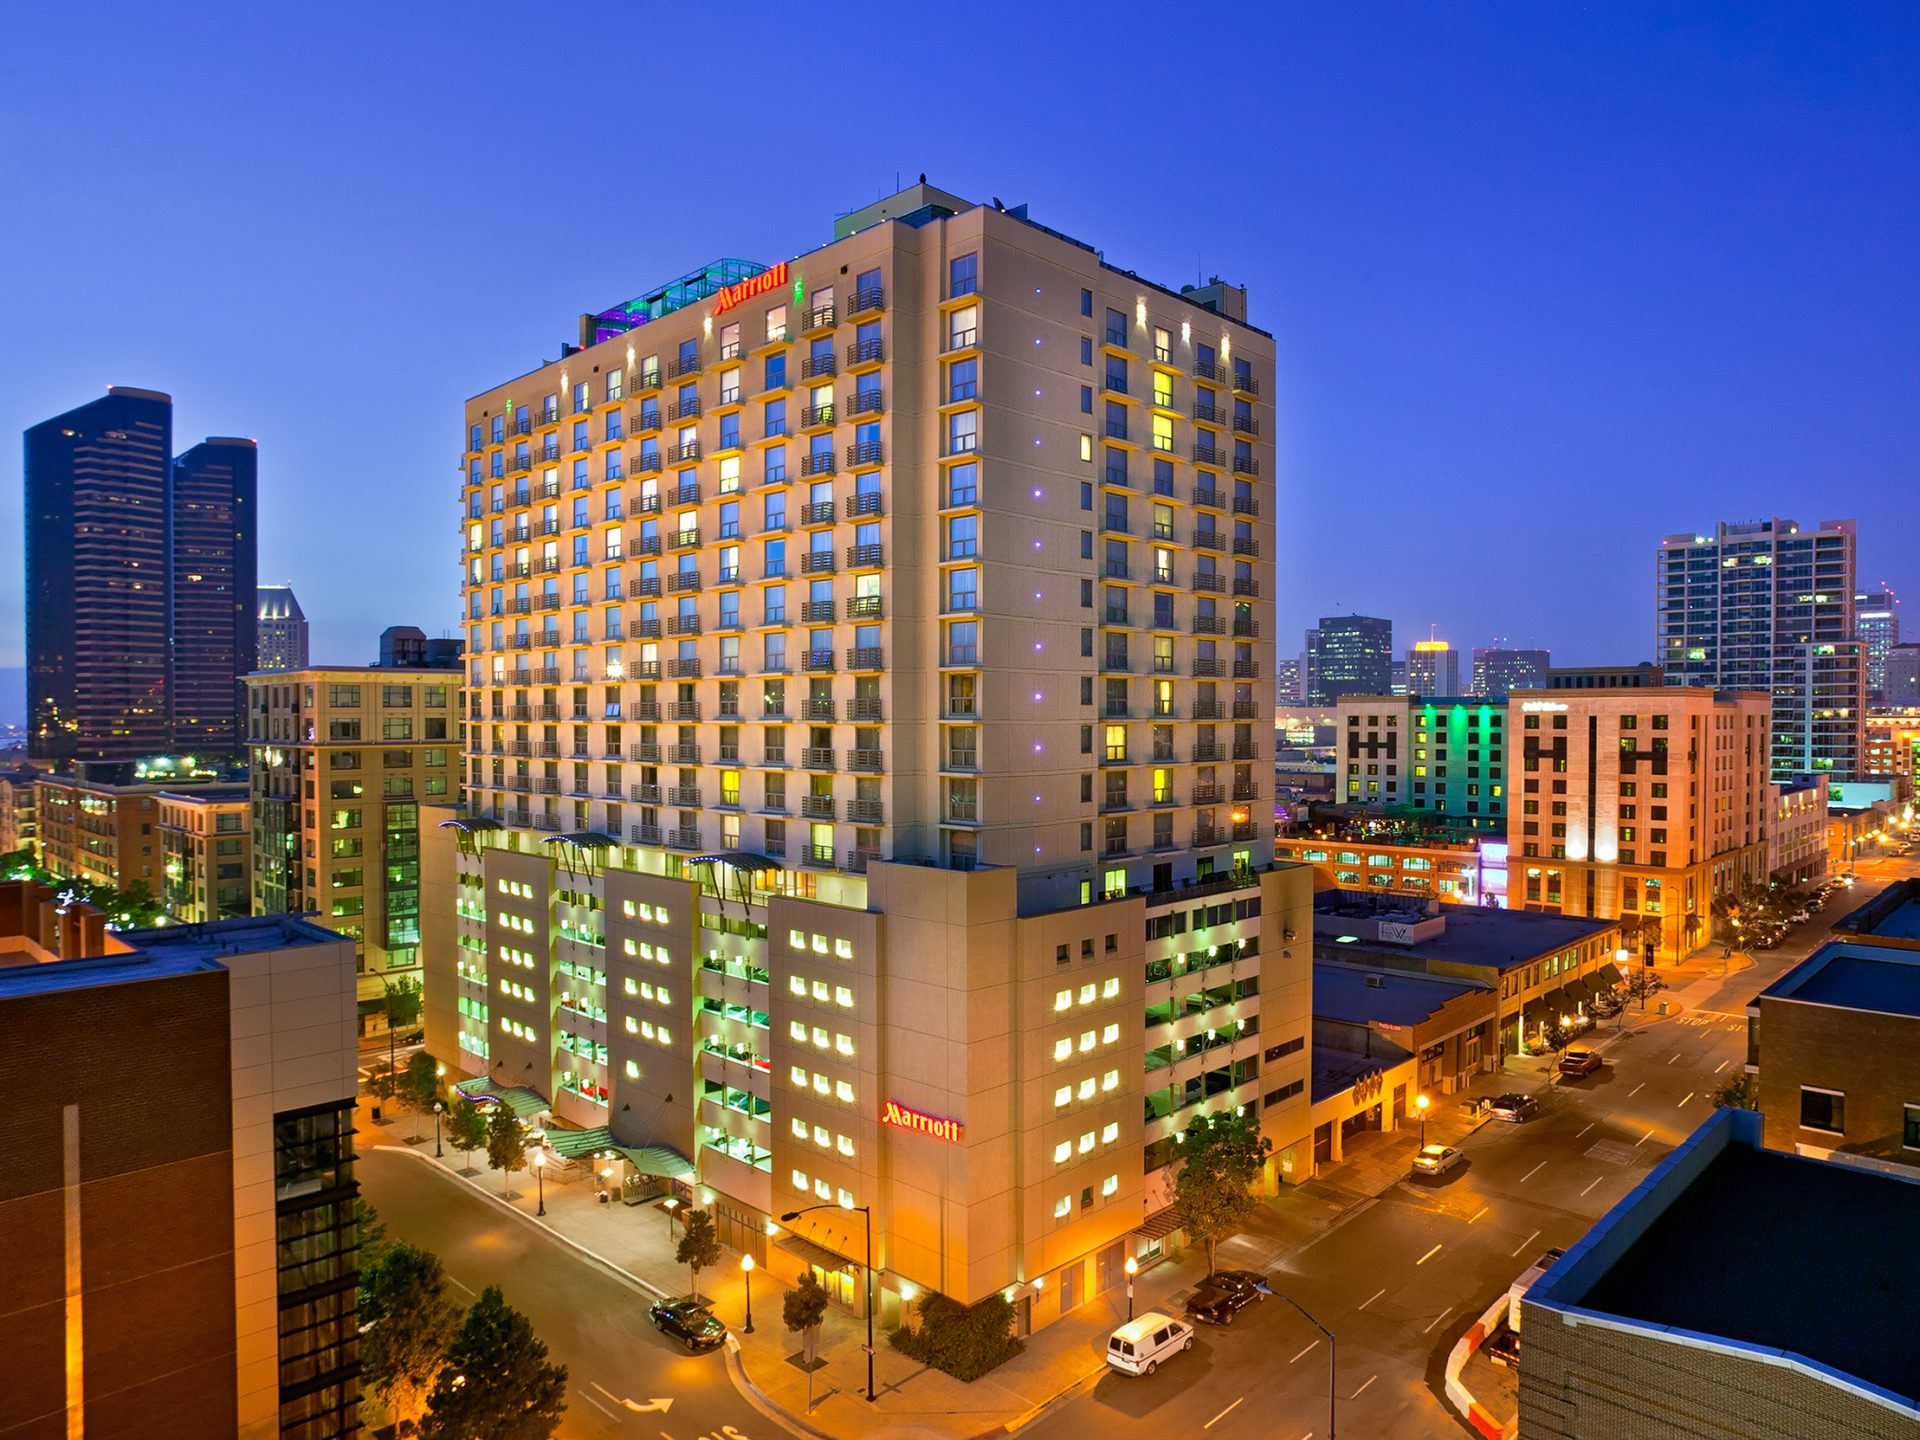 Discover our Hotel in Downtown San Diego - San Diego Marriott Gaslamp Quarter